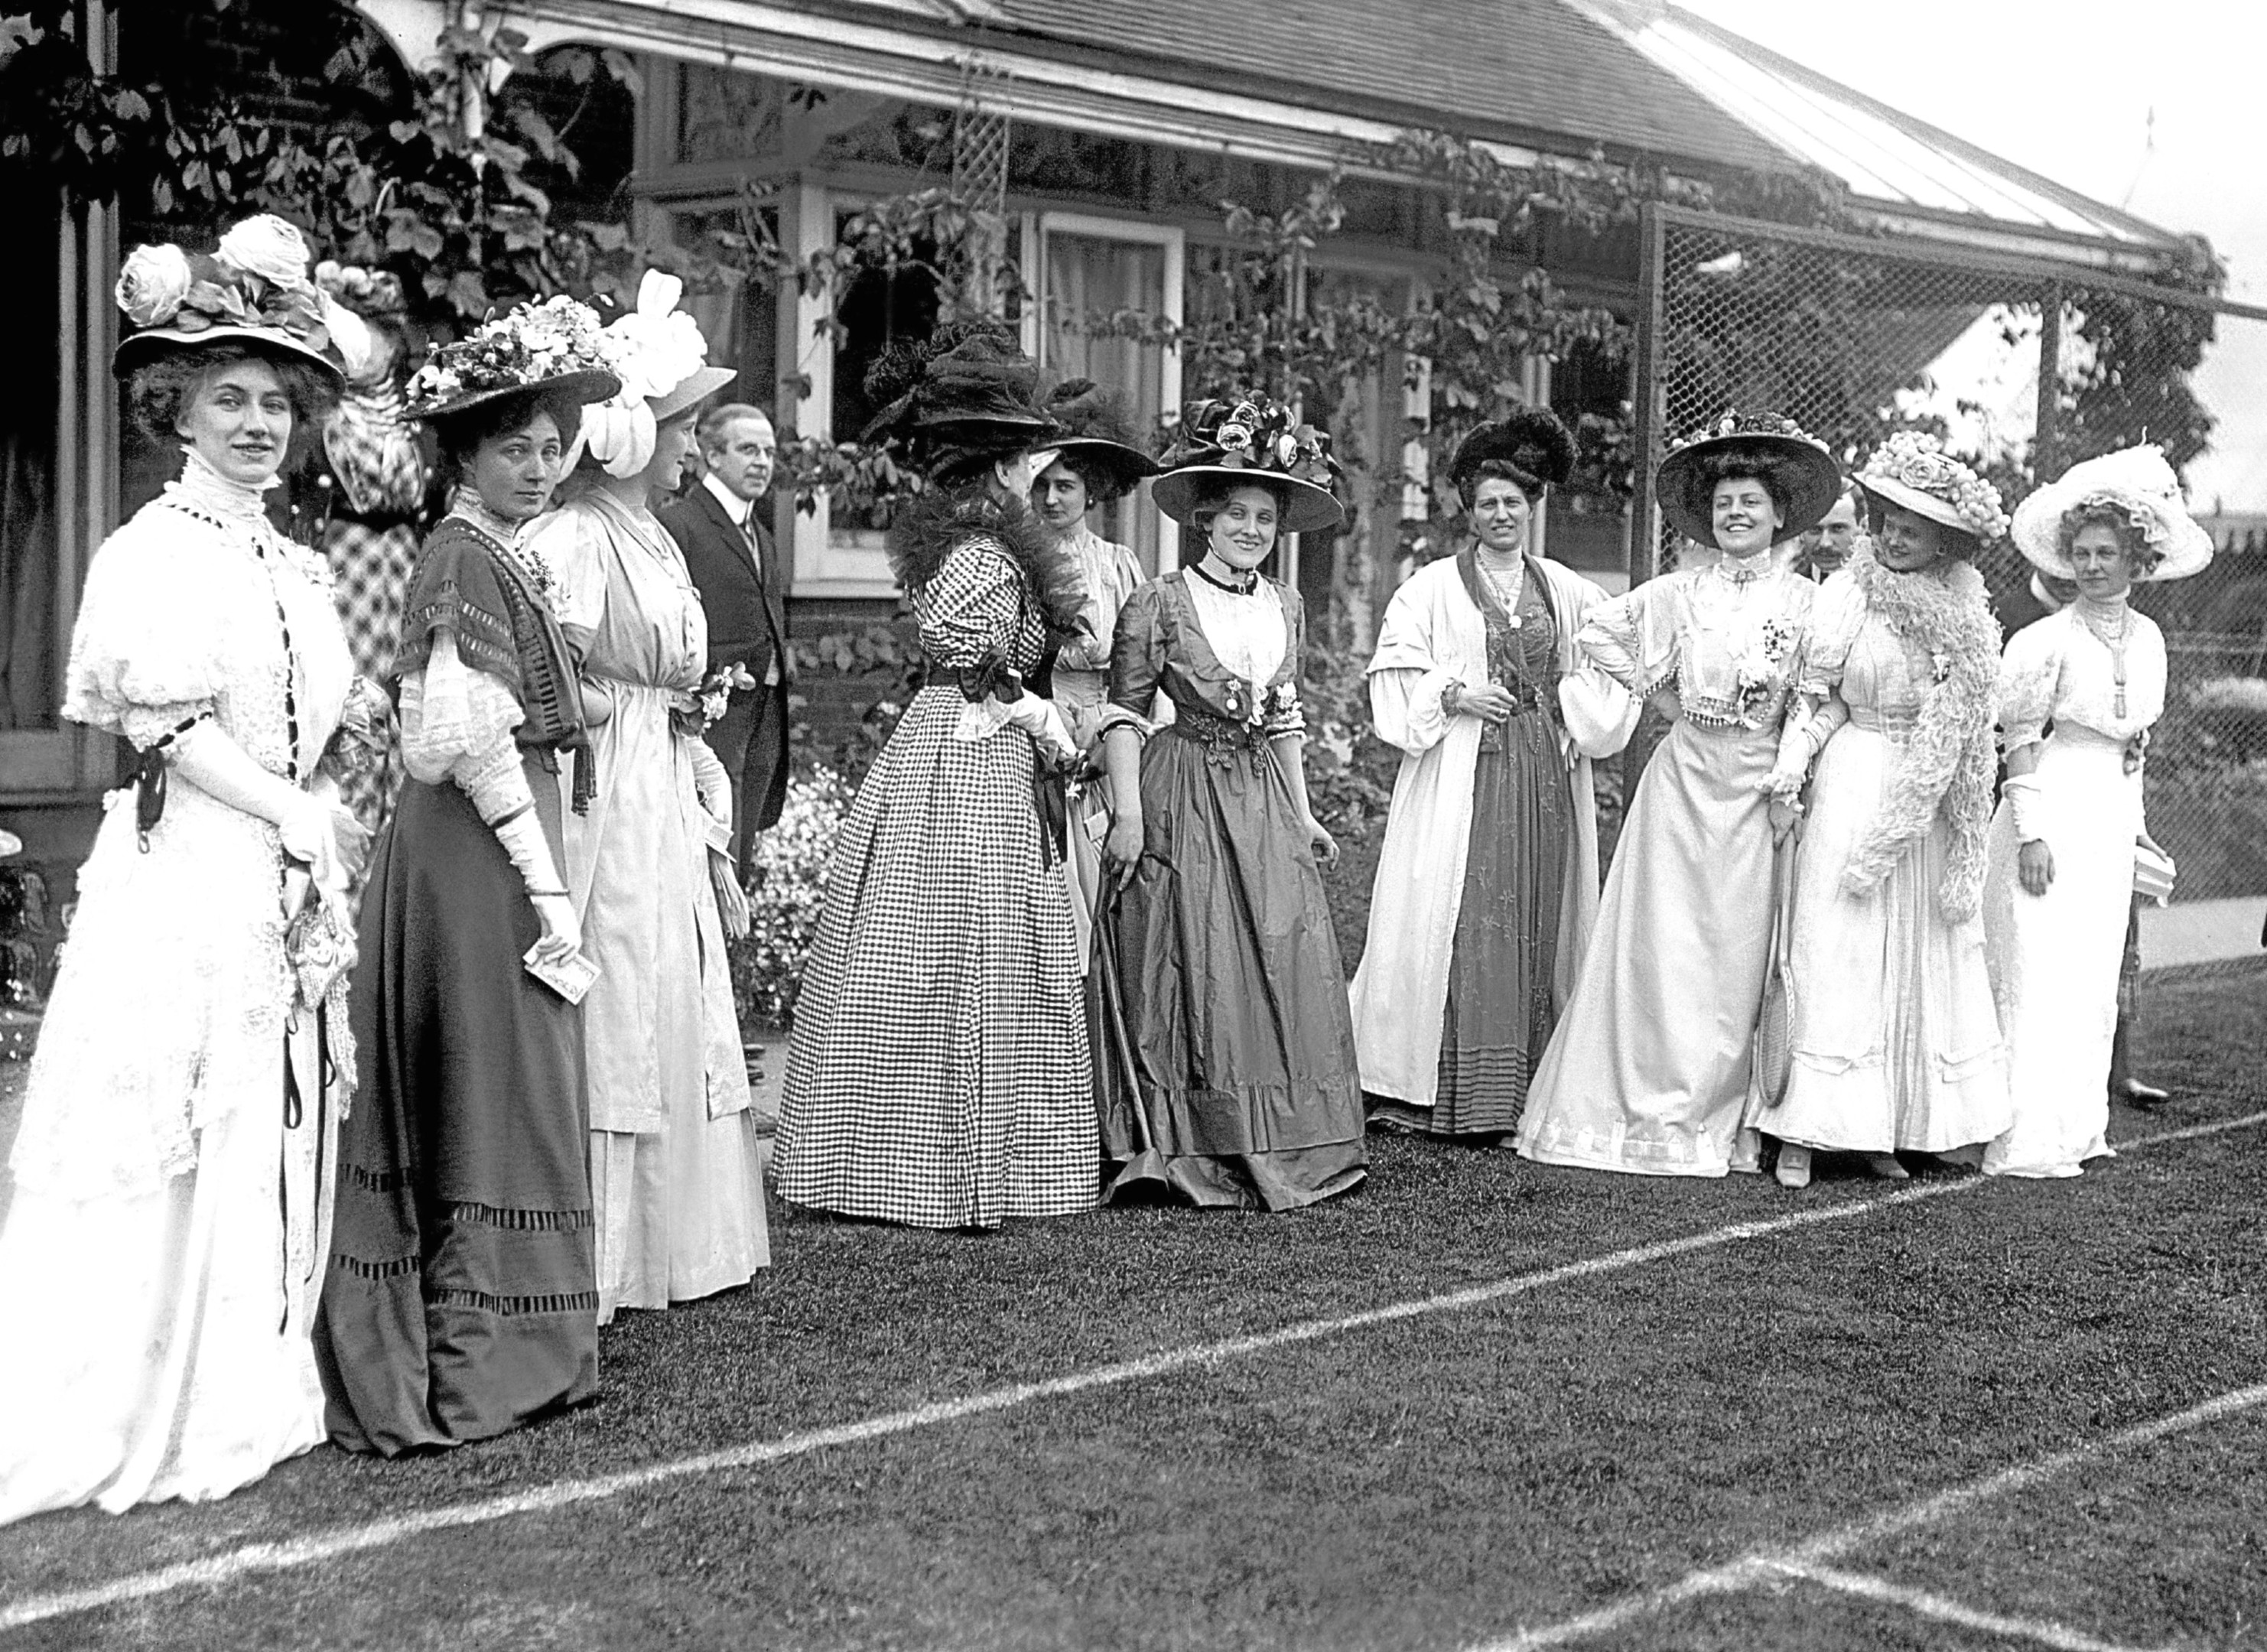 Edwardian fashion being displayed by elegantly dressed ladies during a tennis party at stage celebrity Edna May's wedding.